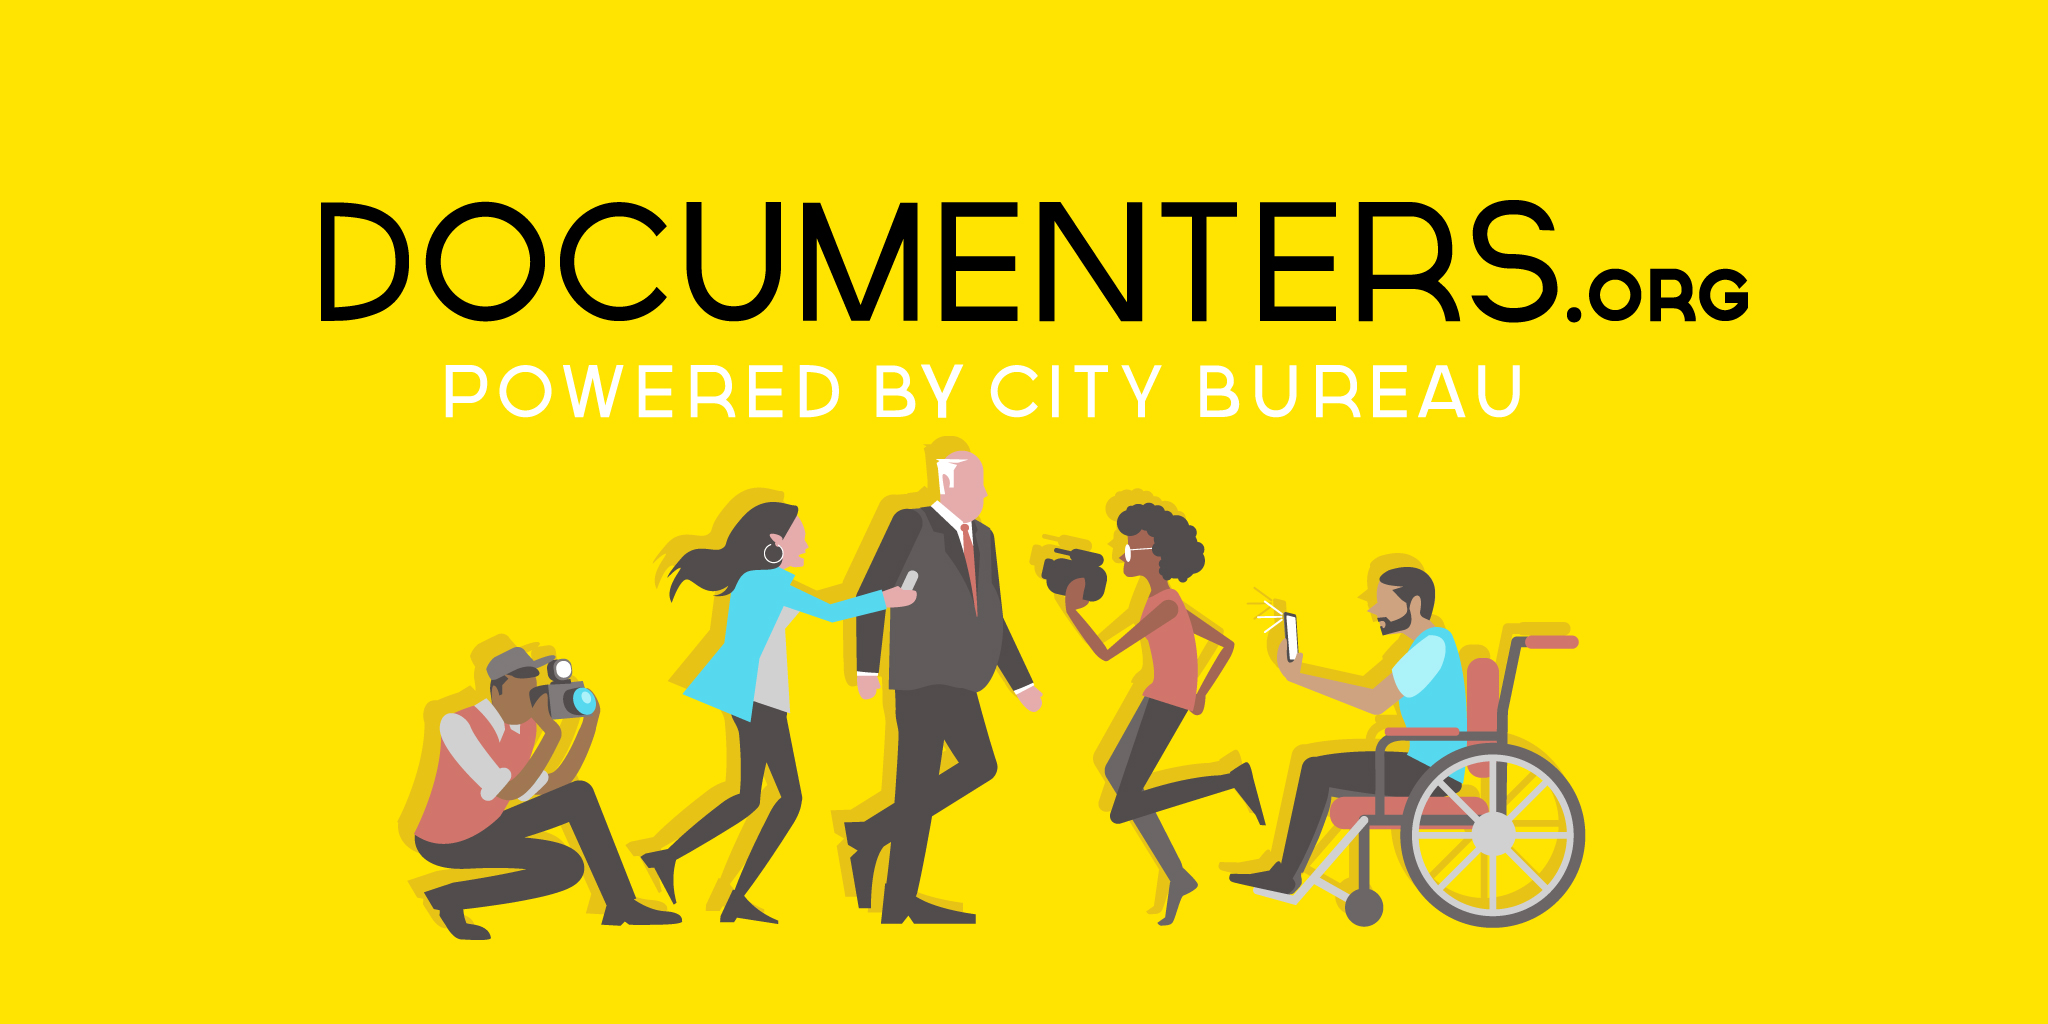 Documenters.org